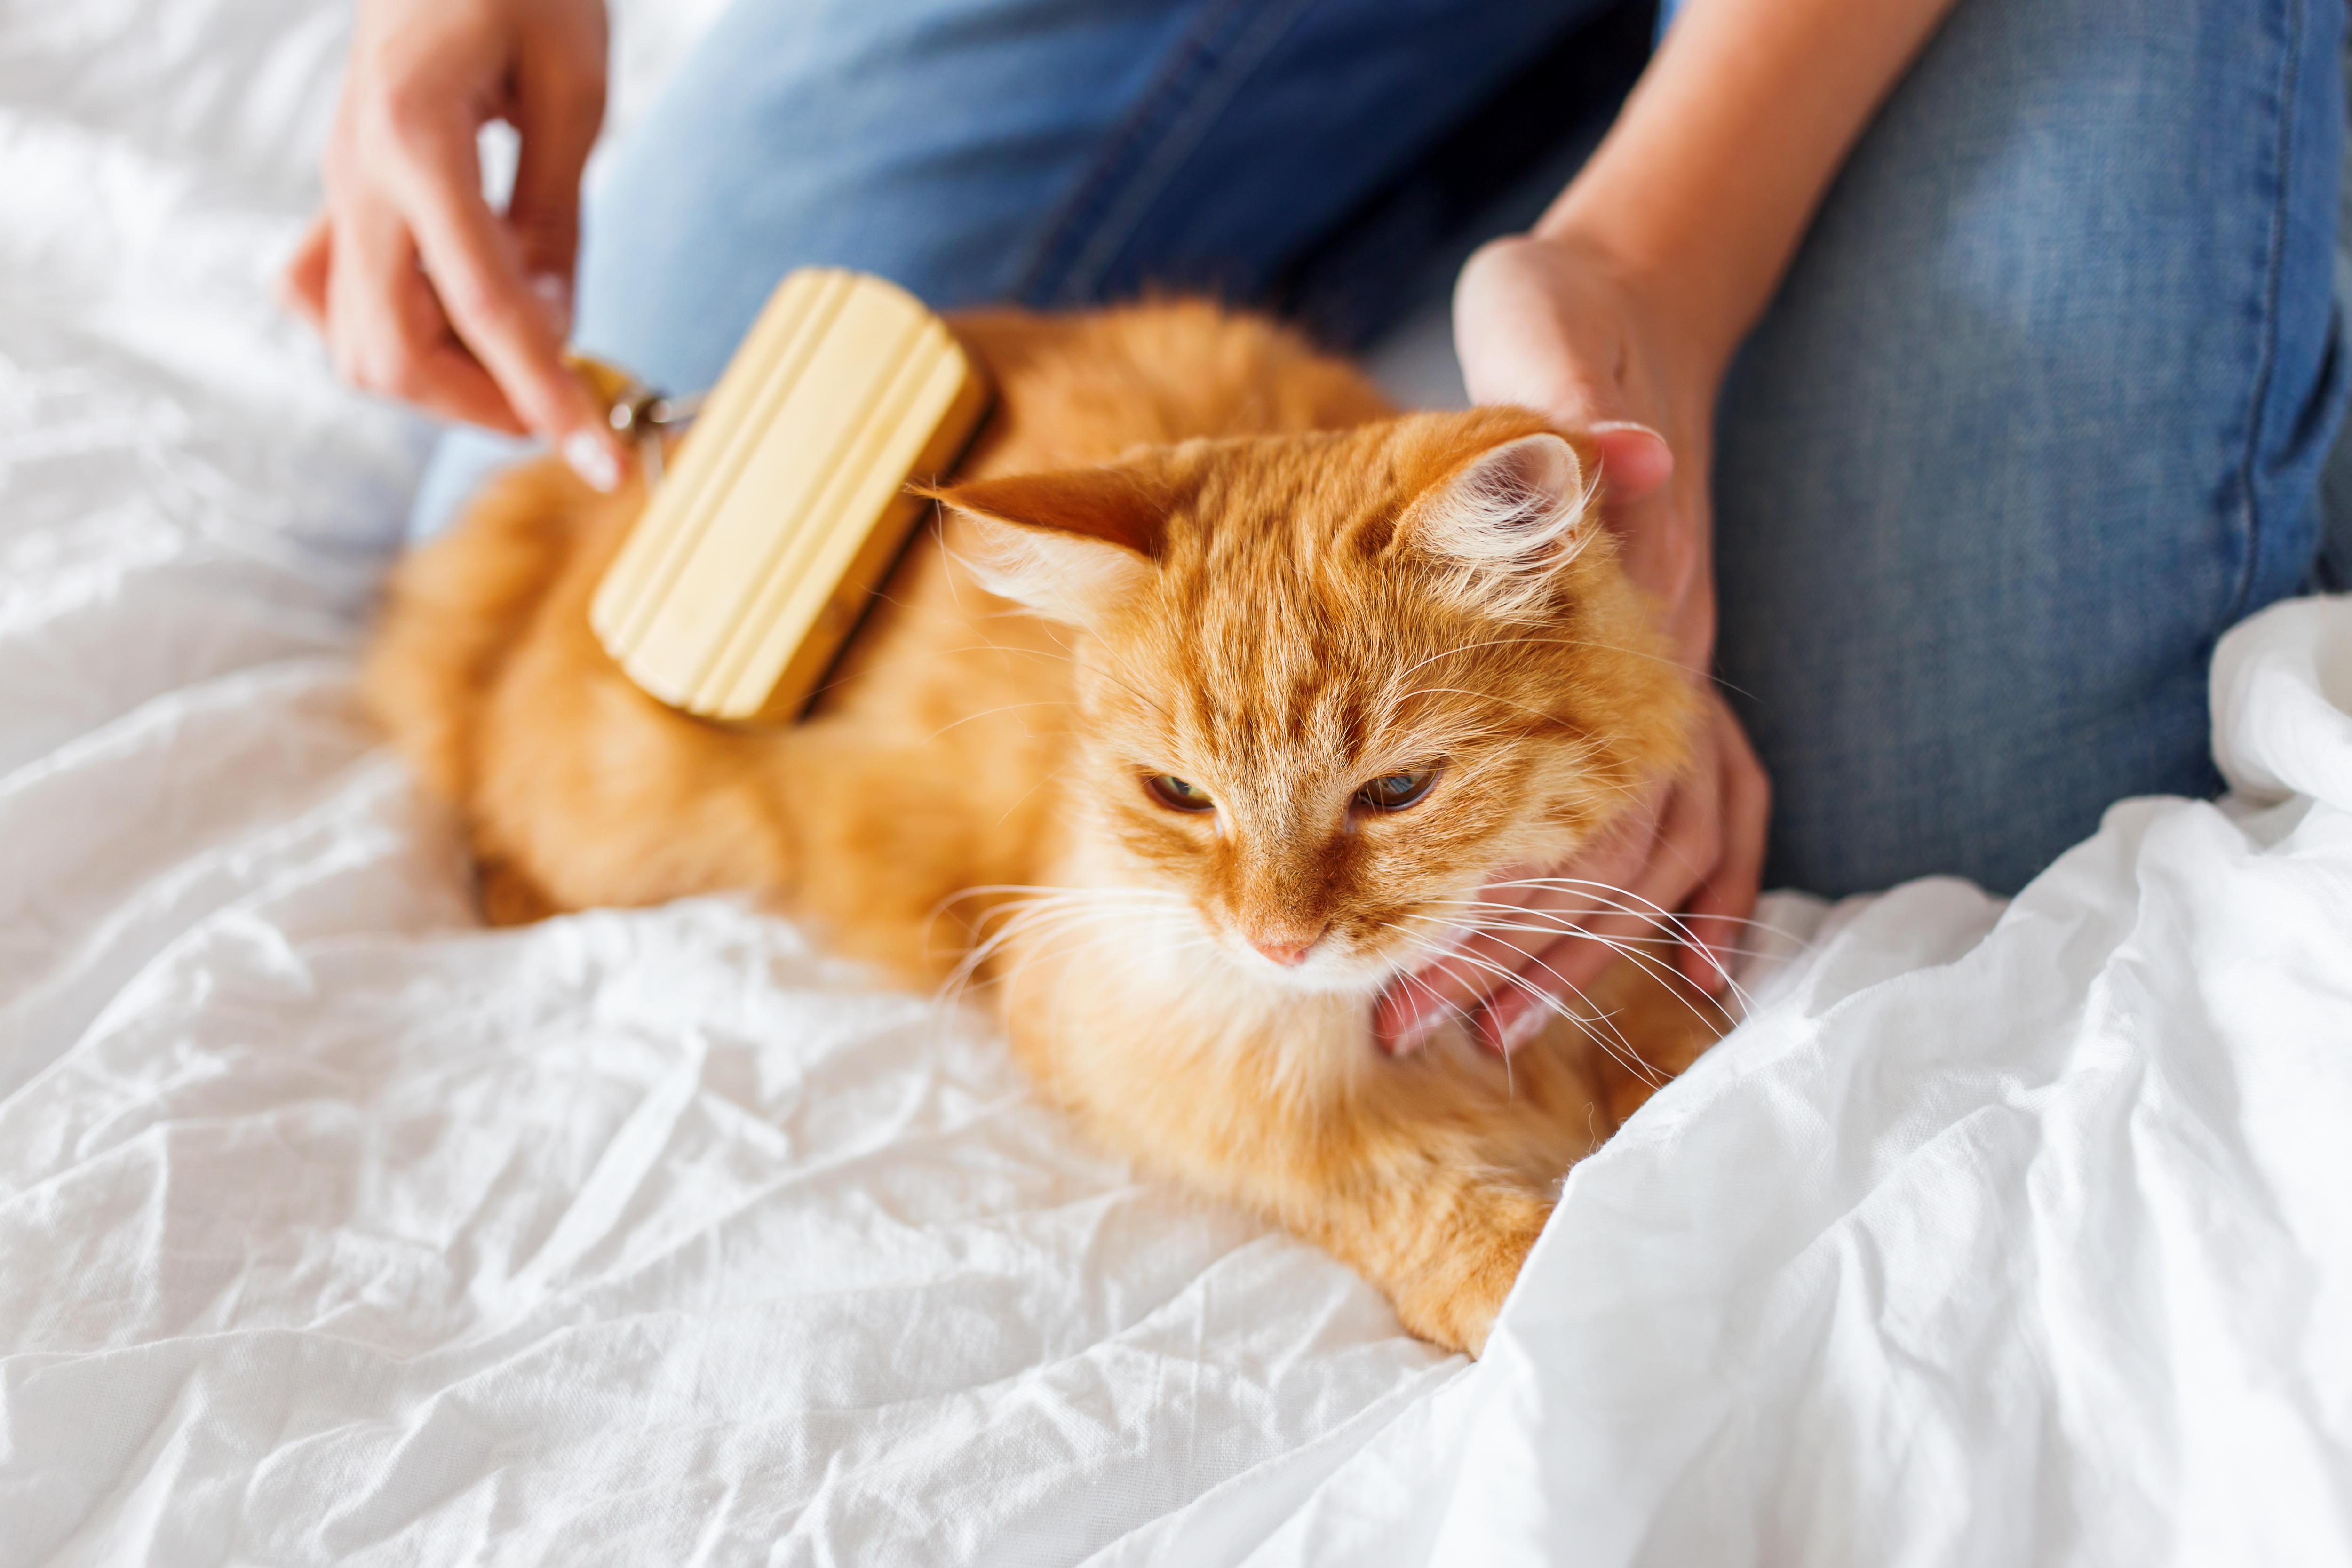 An orange cat enjoys getting brushed by his owner